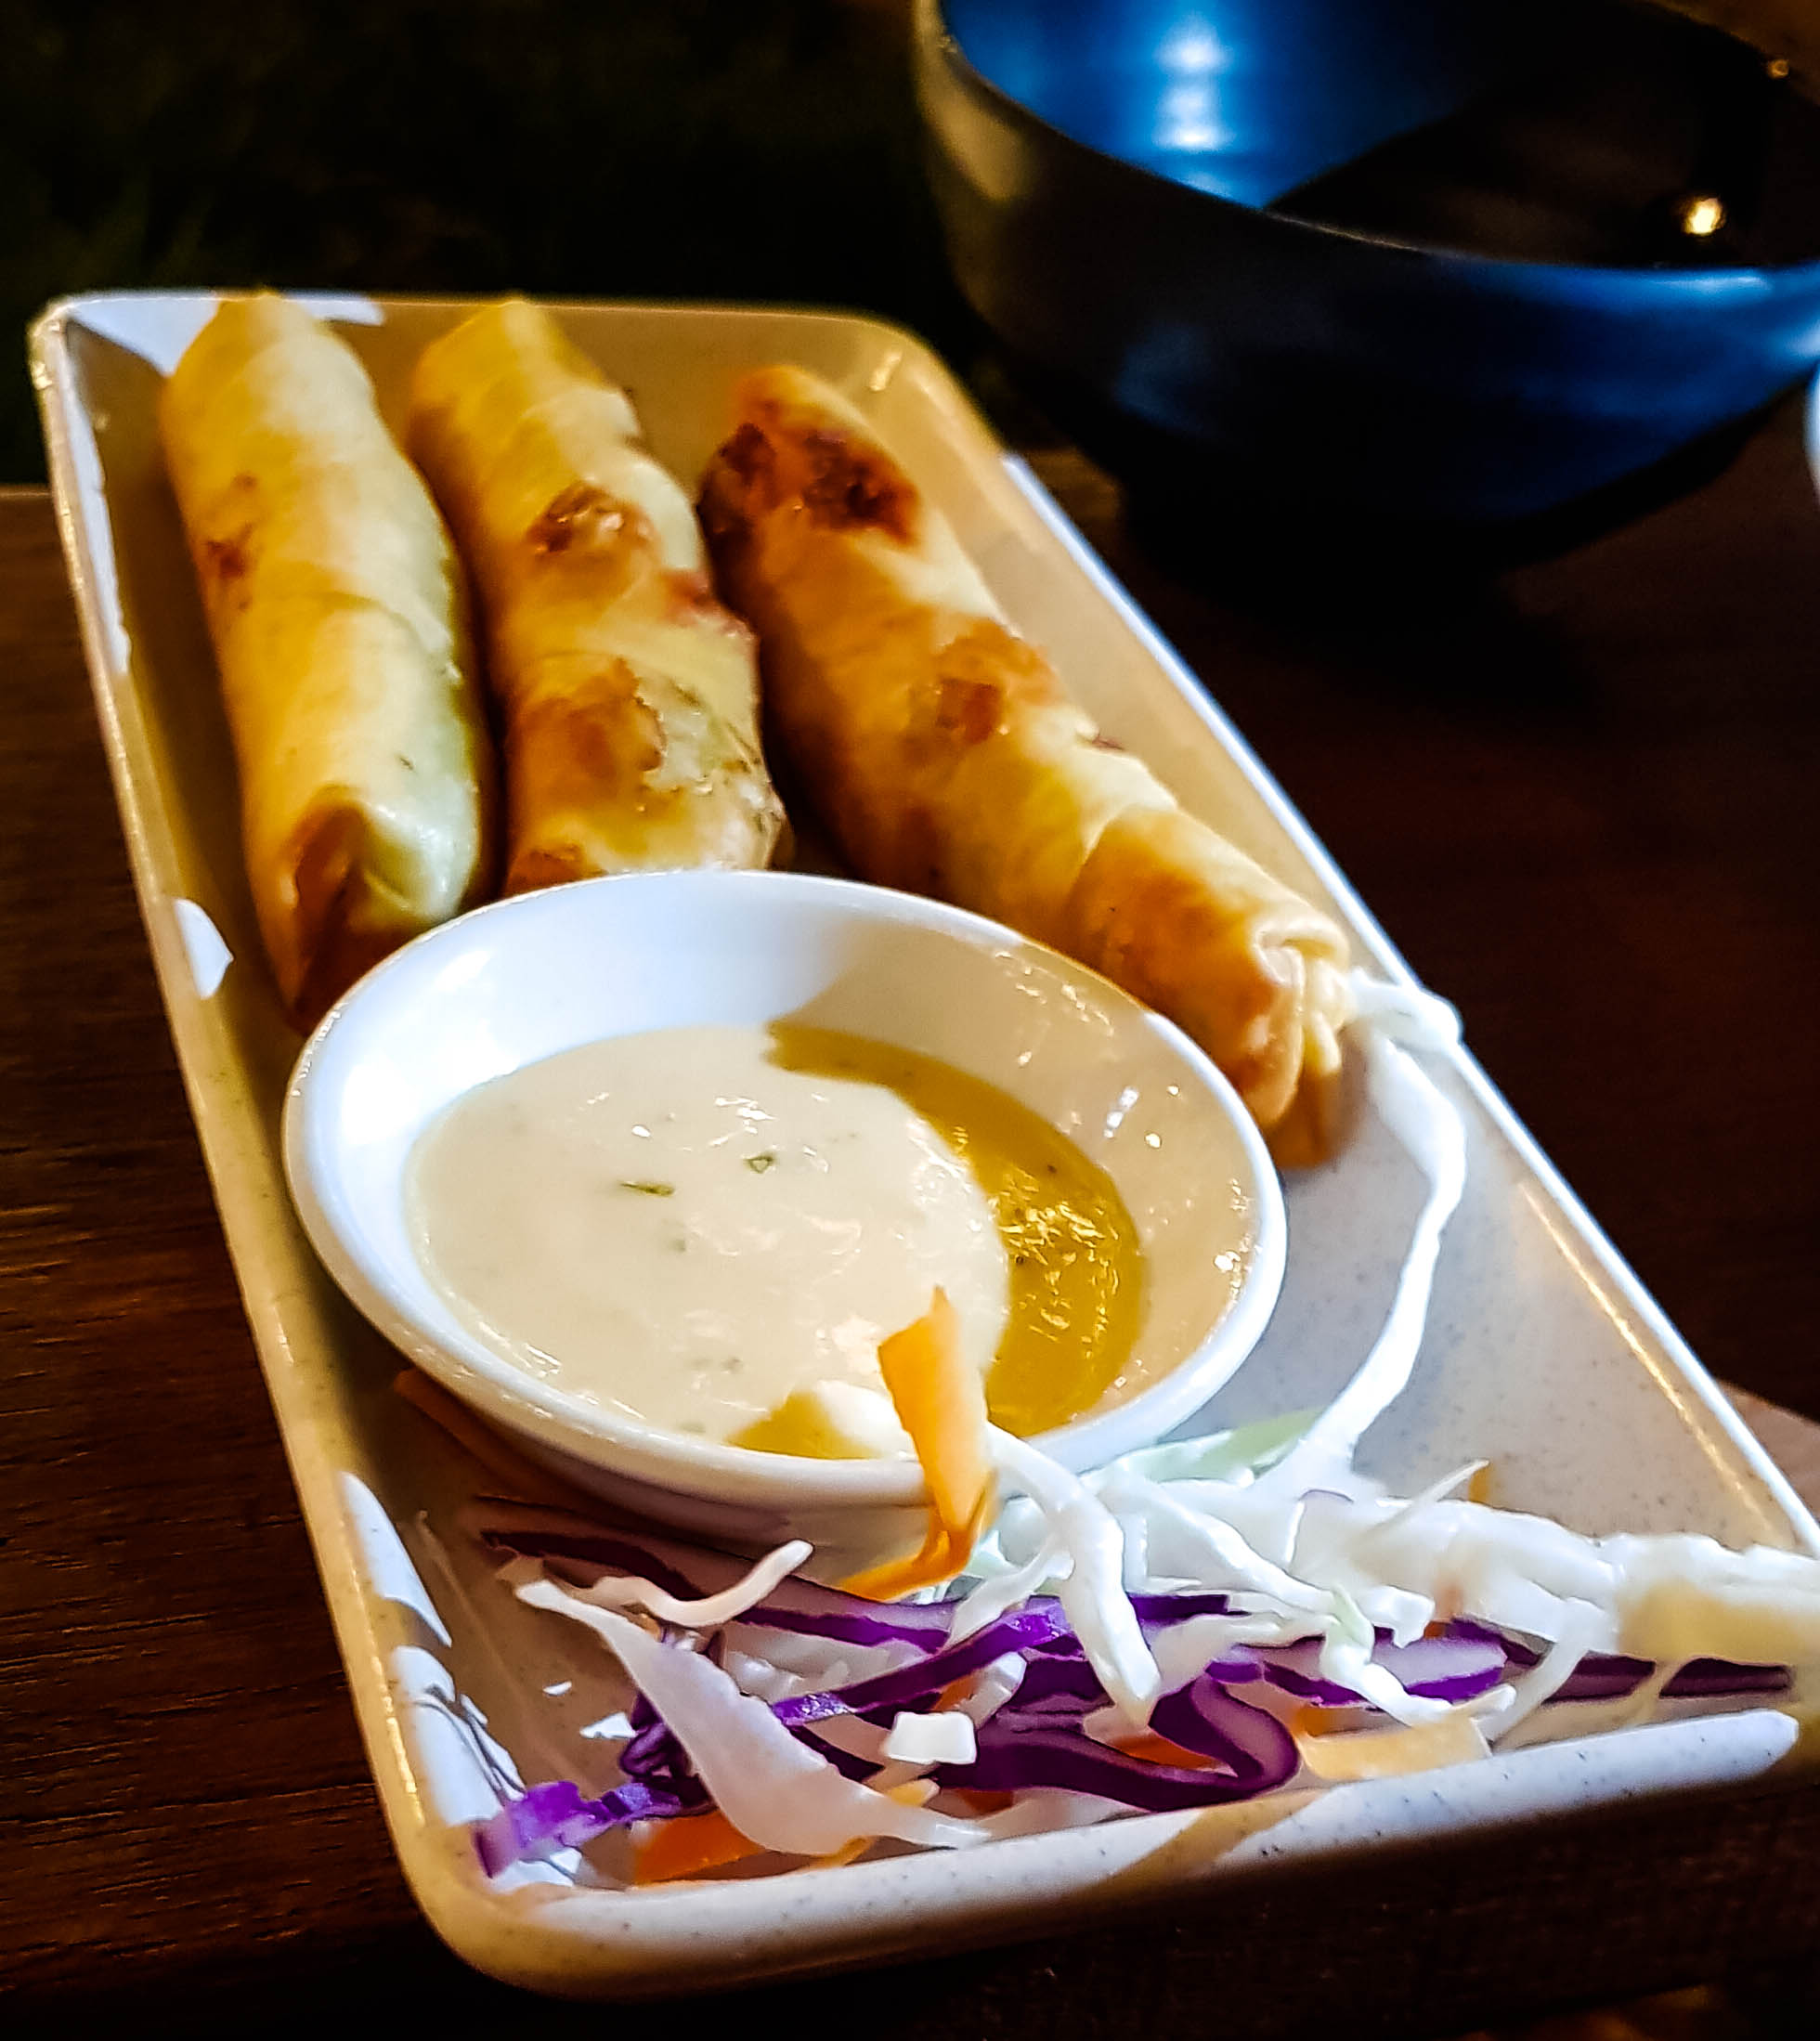 Plate of three spring rolls